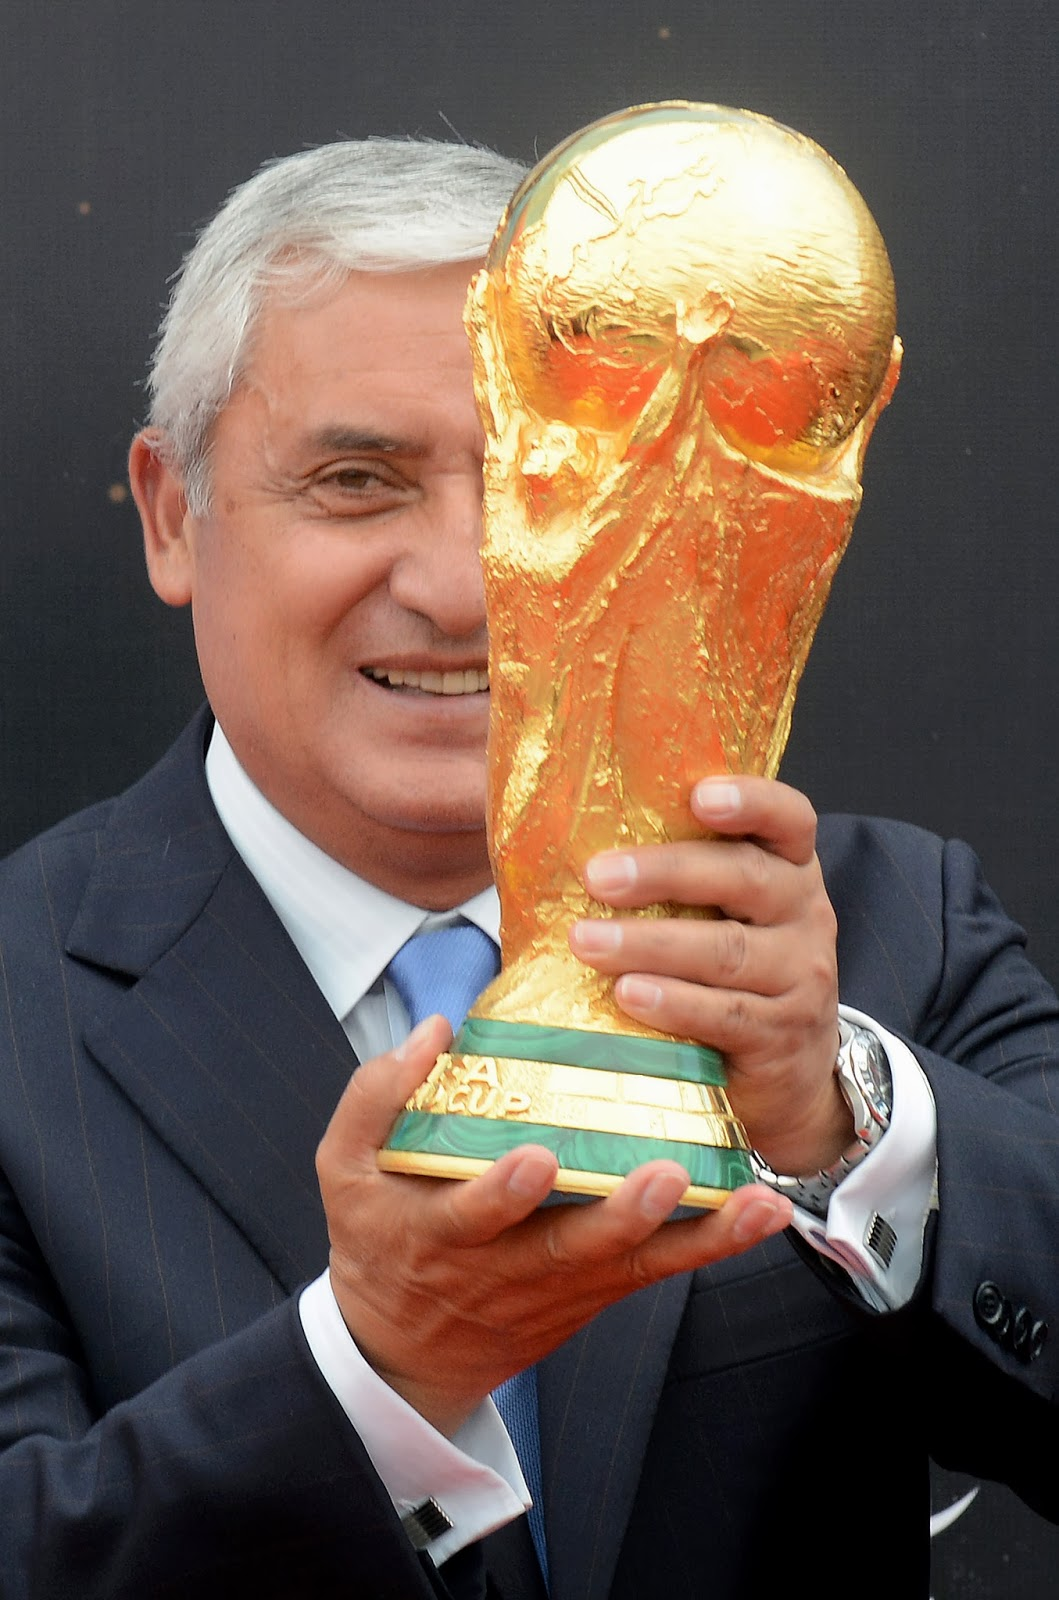 Brazil, Group Stage, Schedule, FIFA 2014 World Cup, FIFA, Sports, Football, Trophy, Otto Perez Molina, Guatemalan, Trophy Tour, Fixtures, Countries, Teams, Sports,